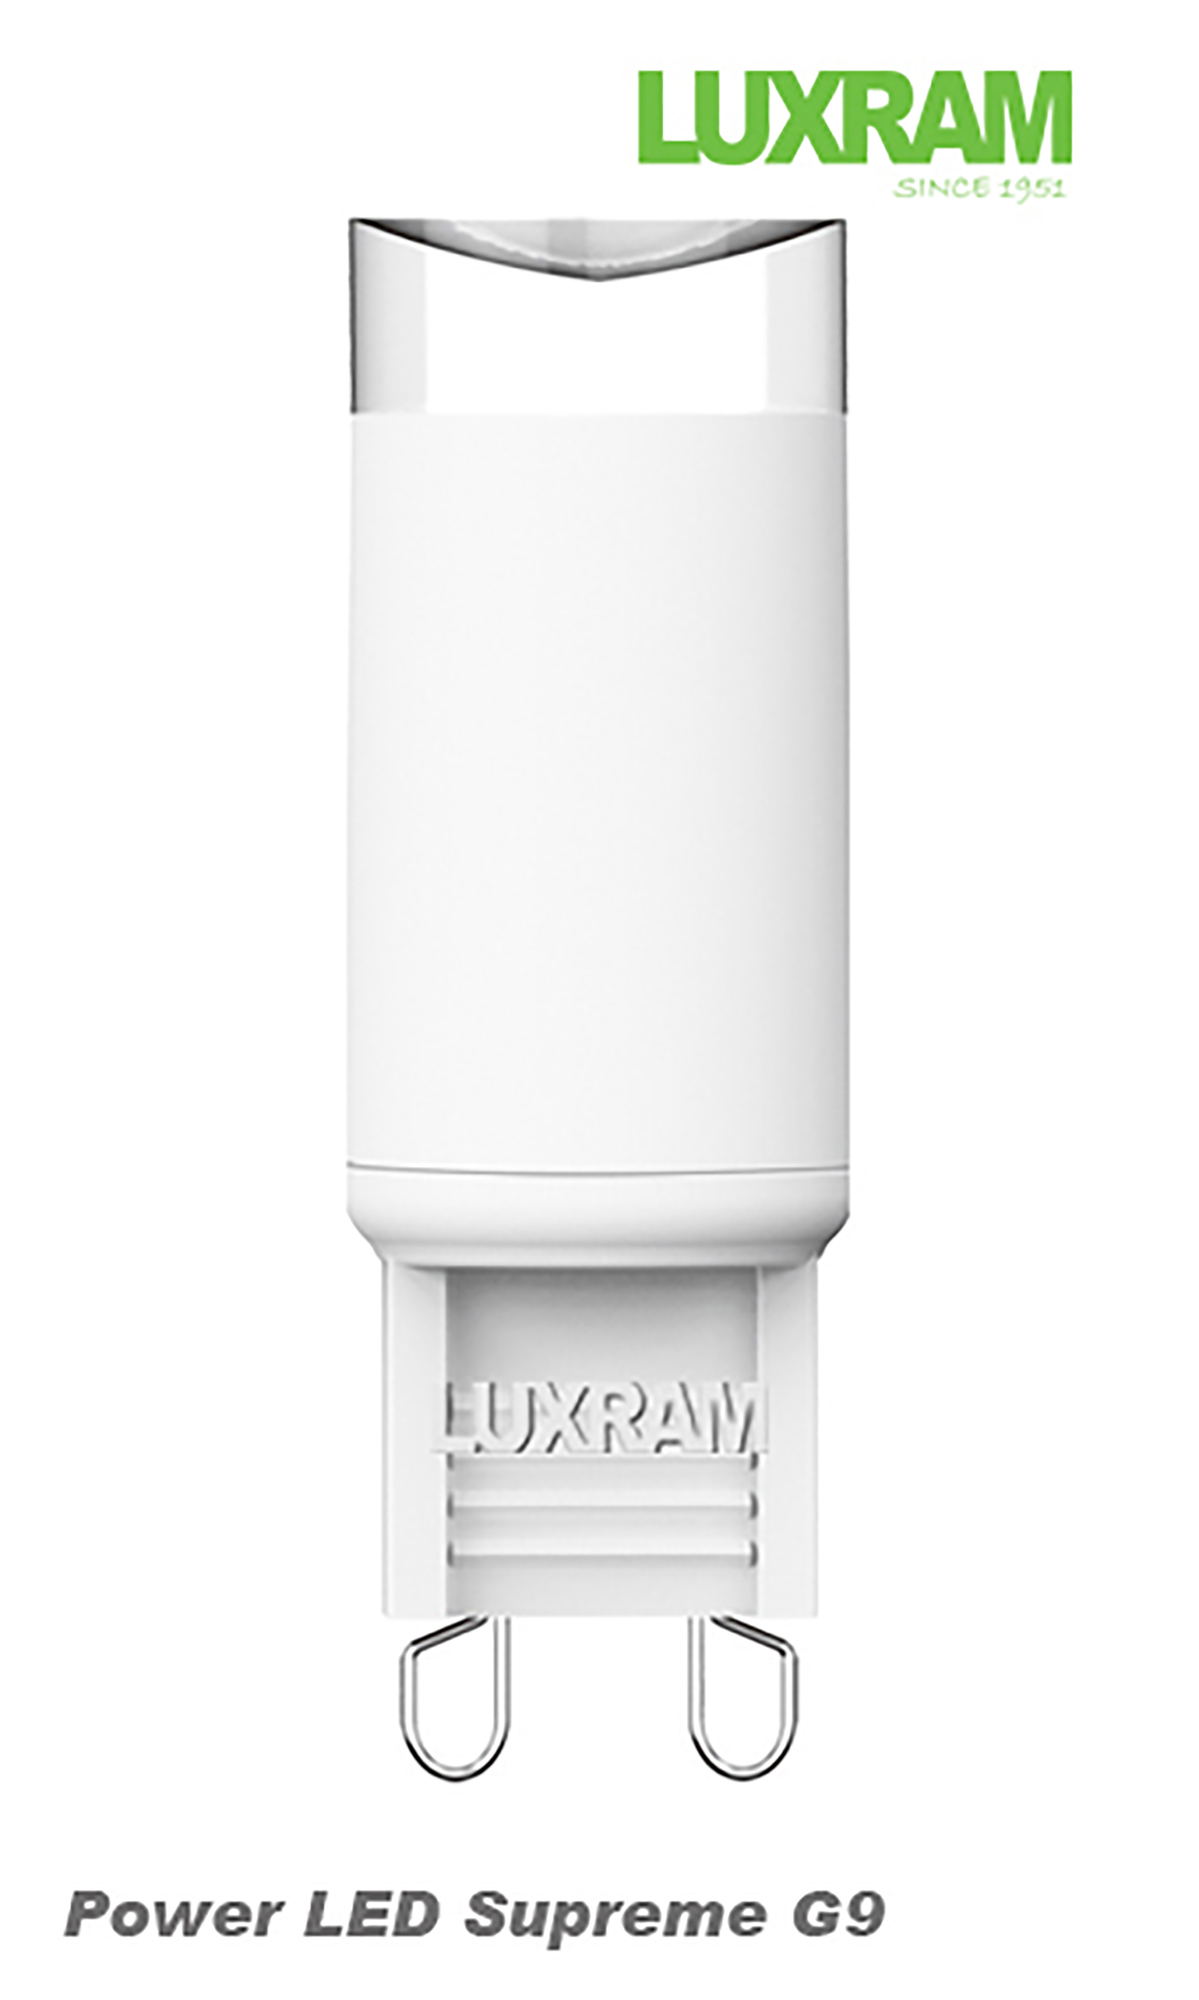 Higher Power LED LED Lamps Luxram Capsule